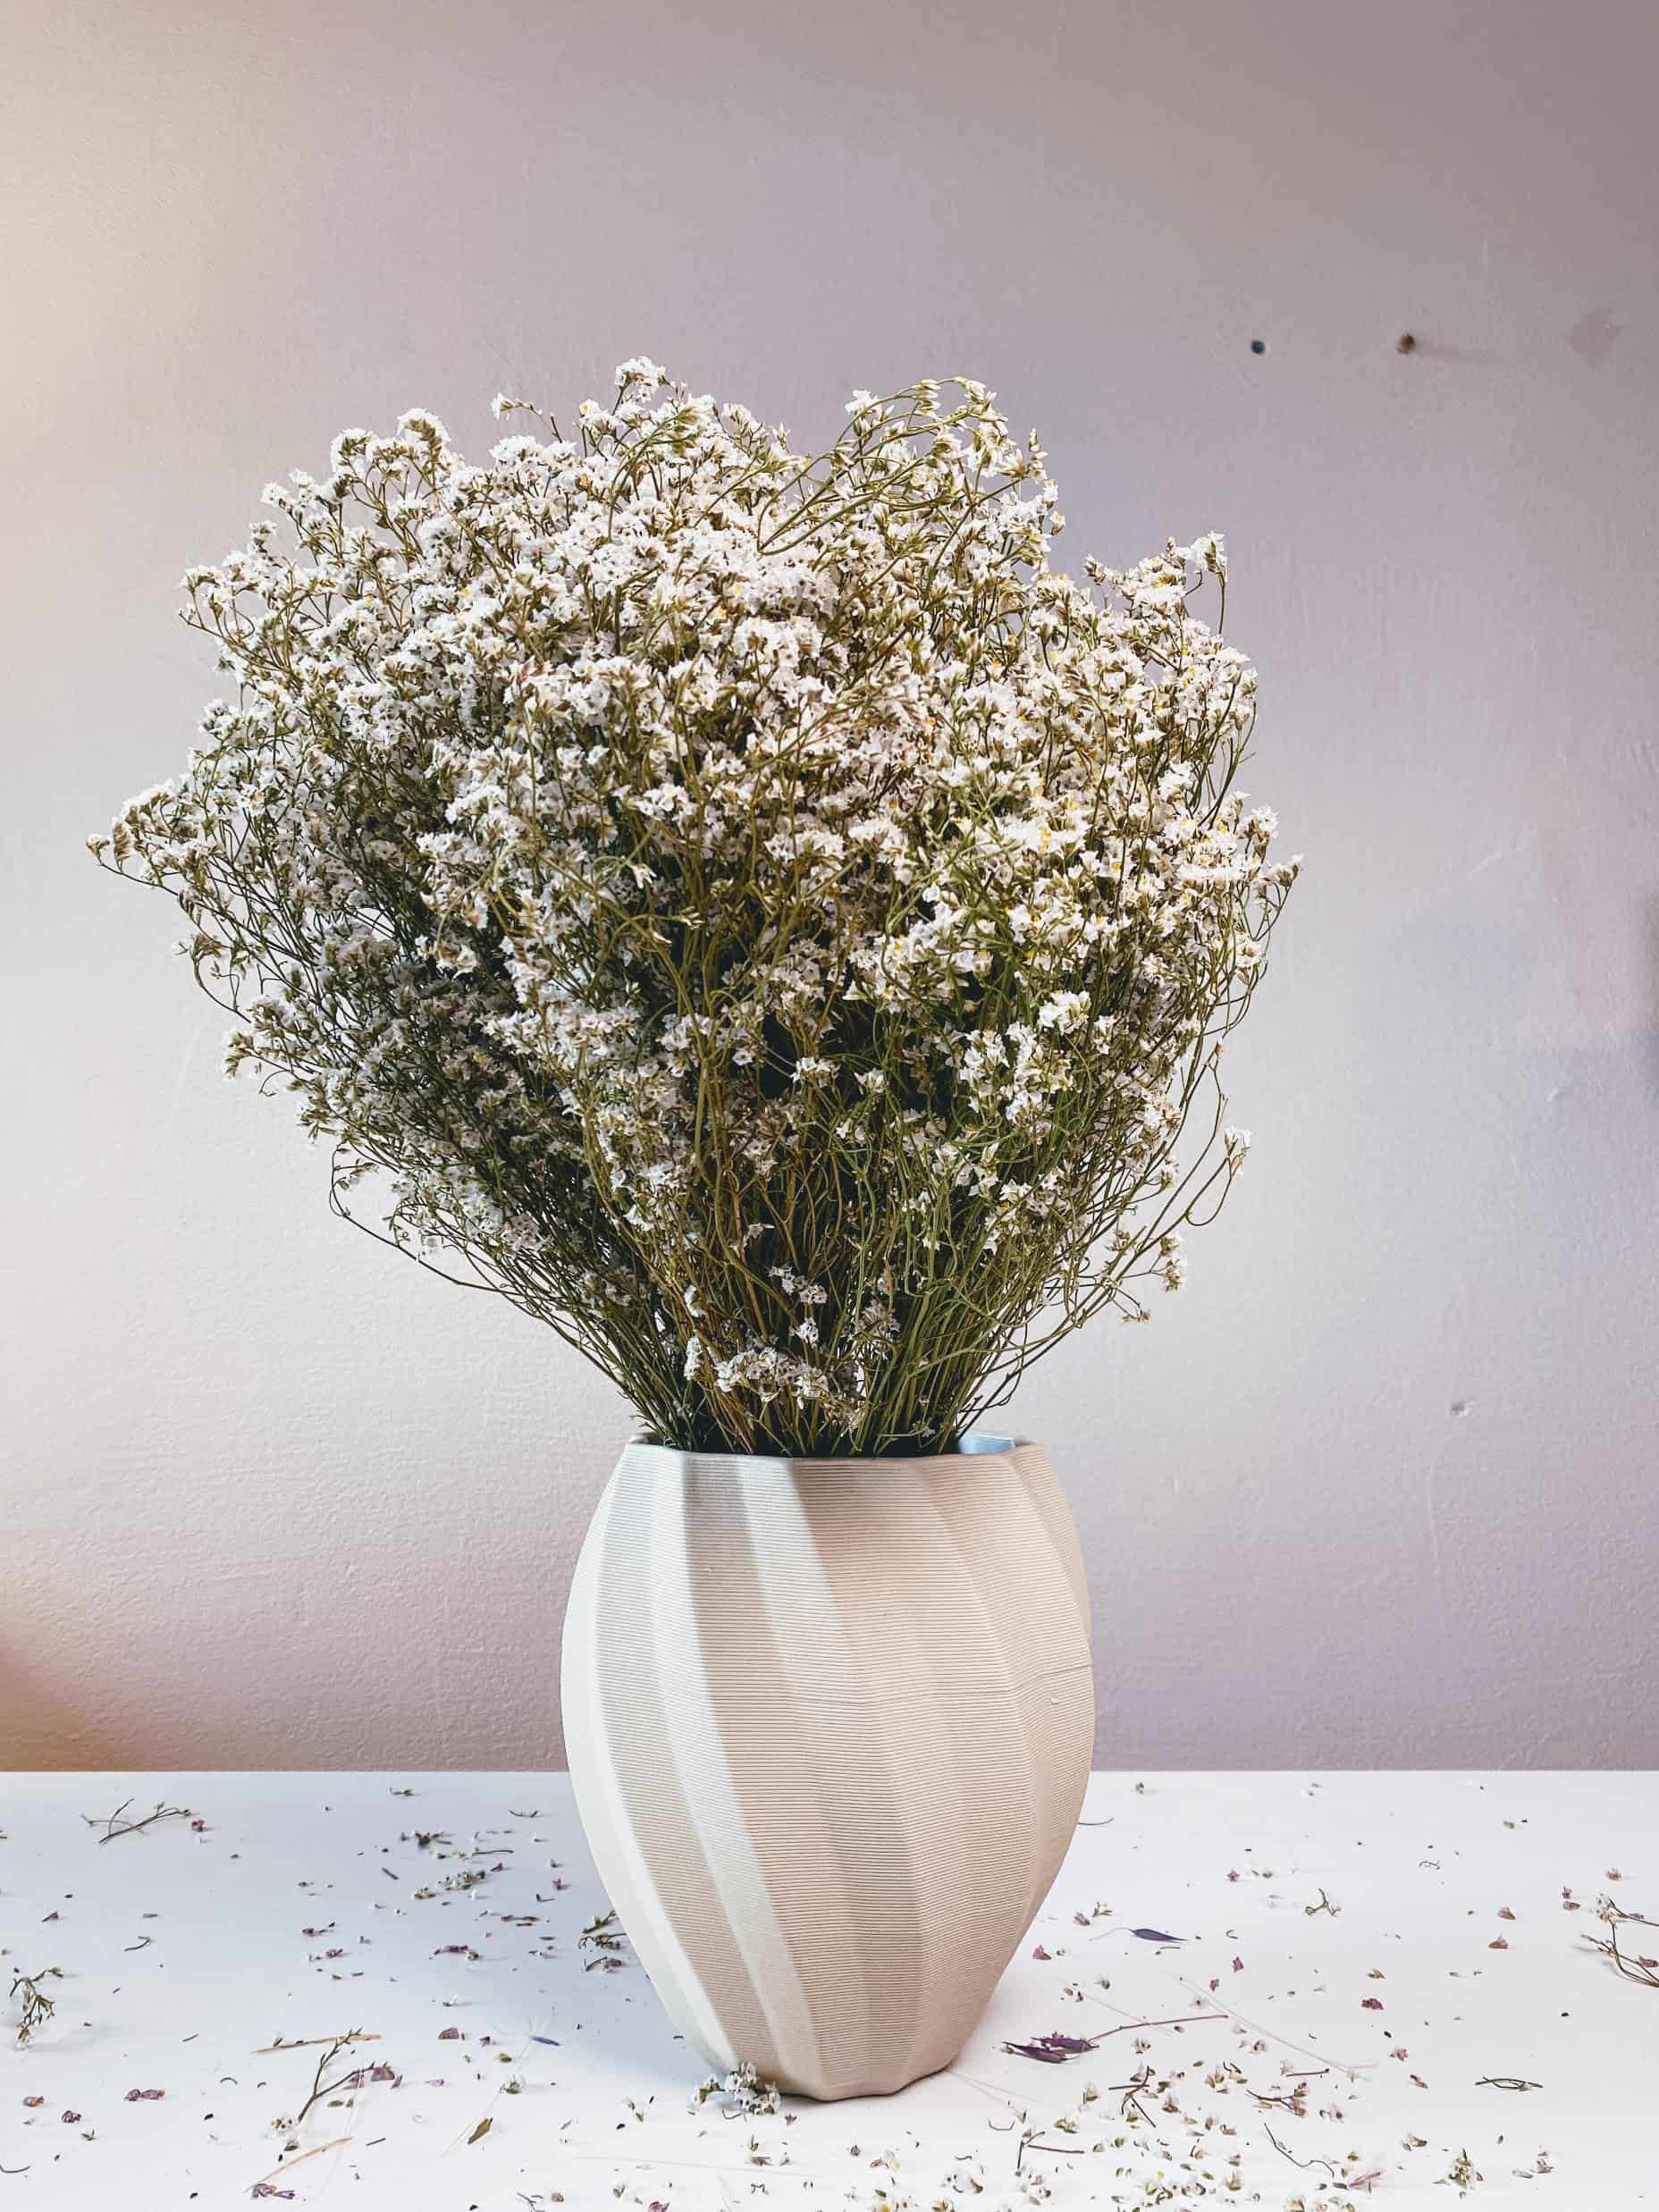 WCKD/a Vase with dried flowers